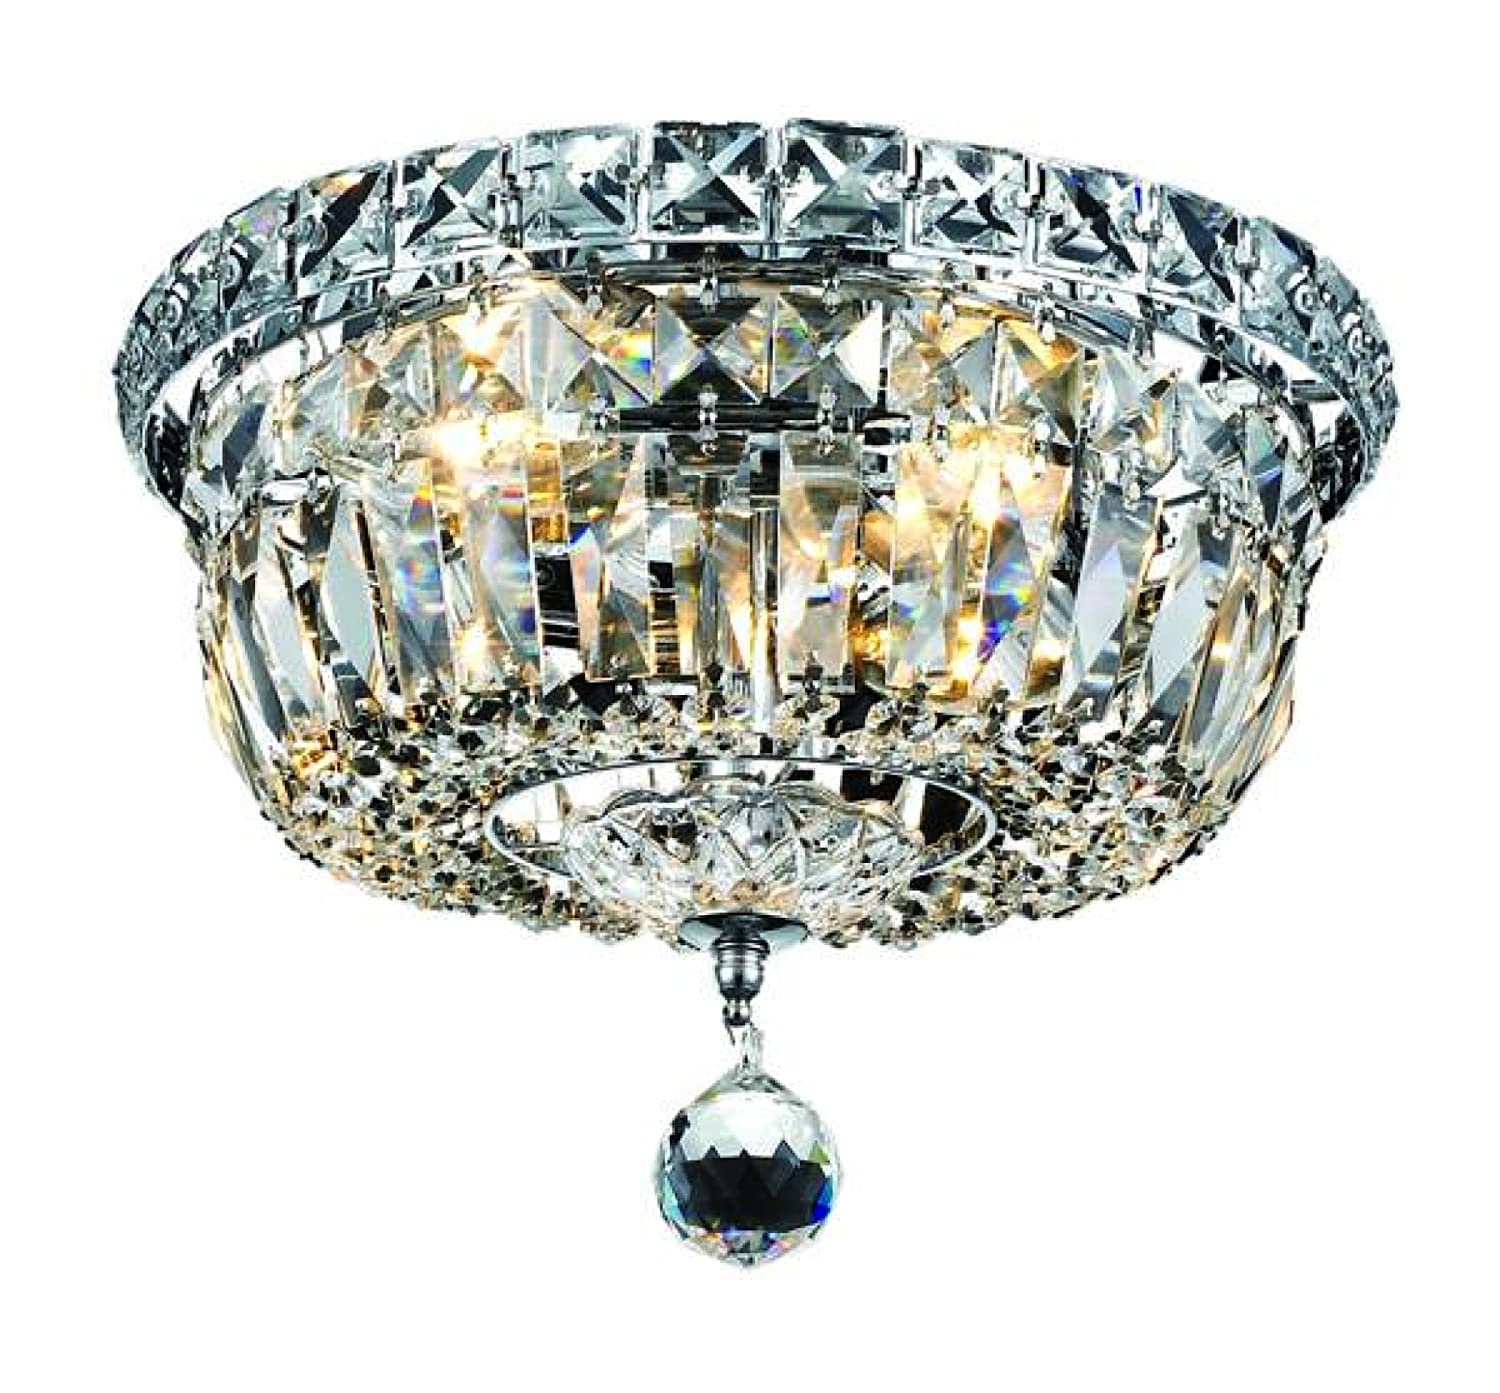 Elegant Lighting 2528f10c Rc Tranquil 8 Inch High 4 Light Flush Mount Chrome Finish With Crystal Clear Royal Cut Close To Ceiling